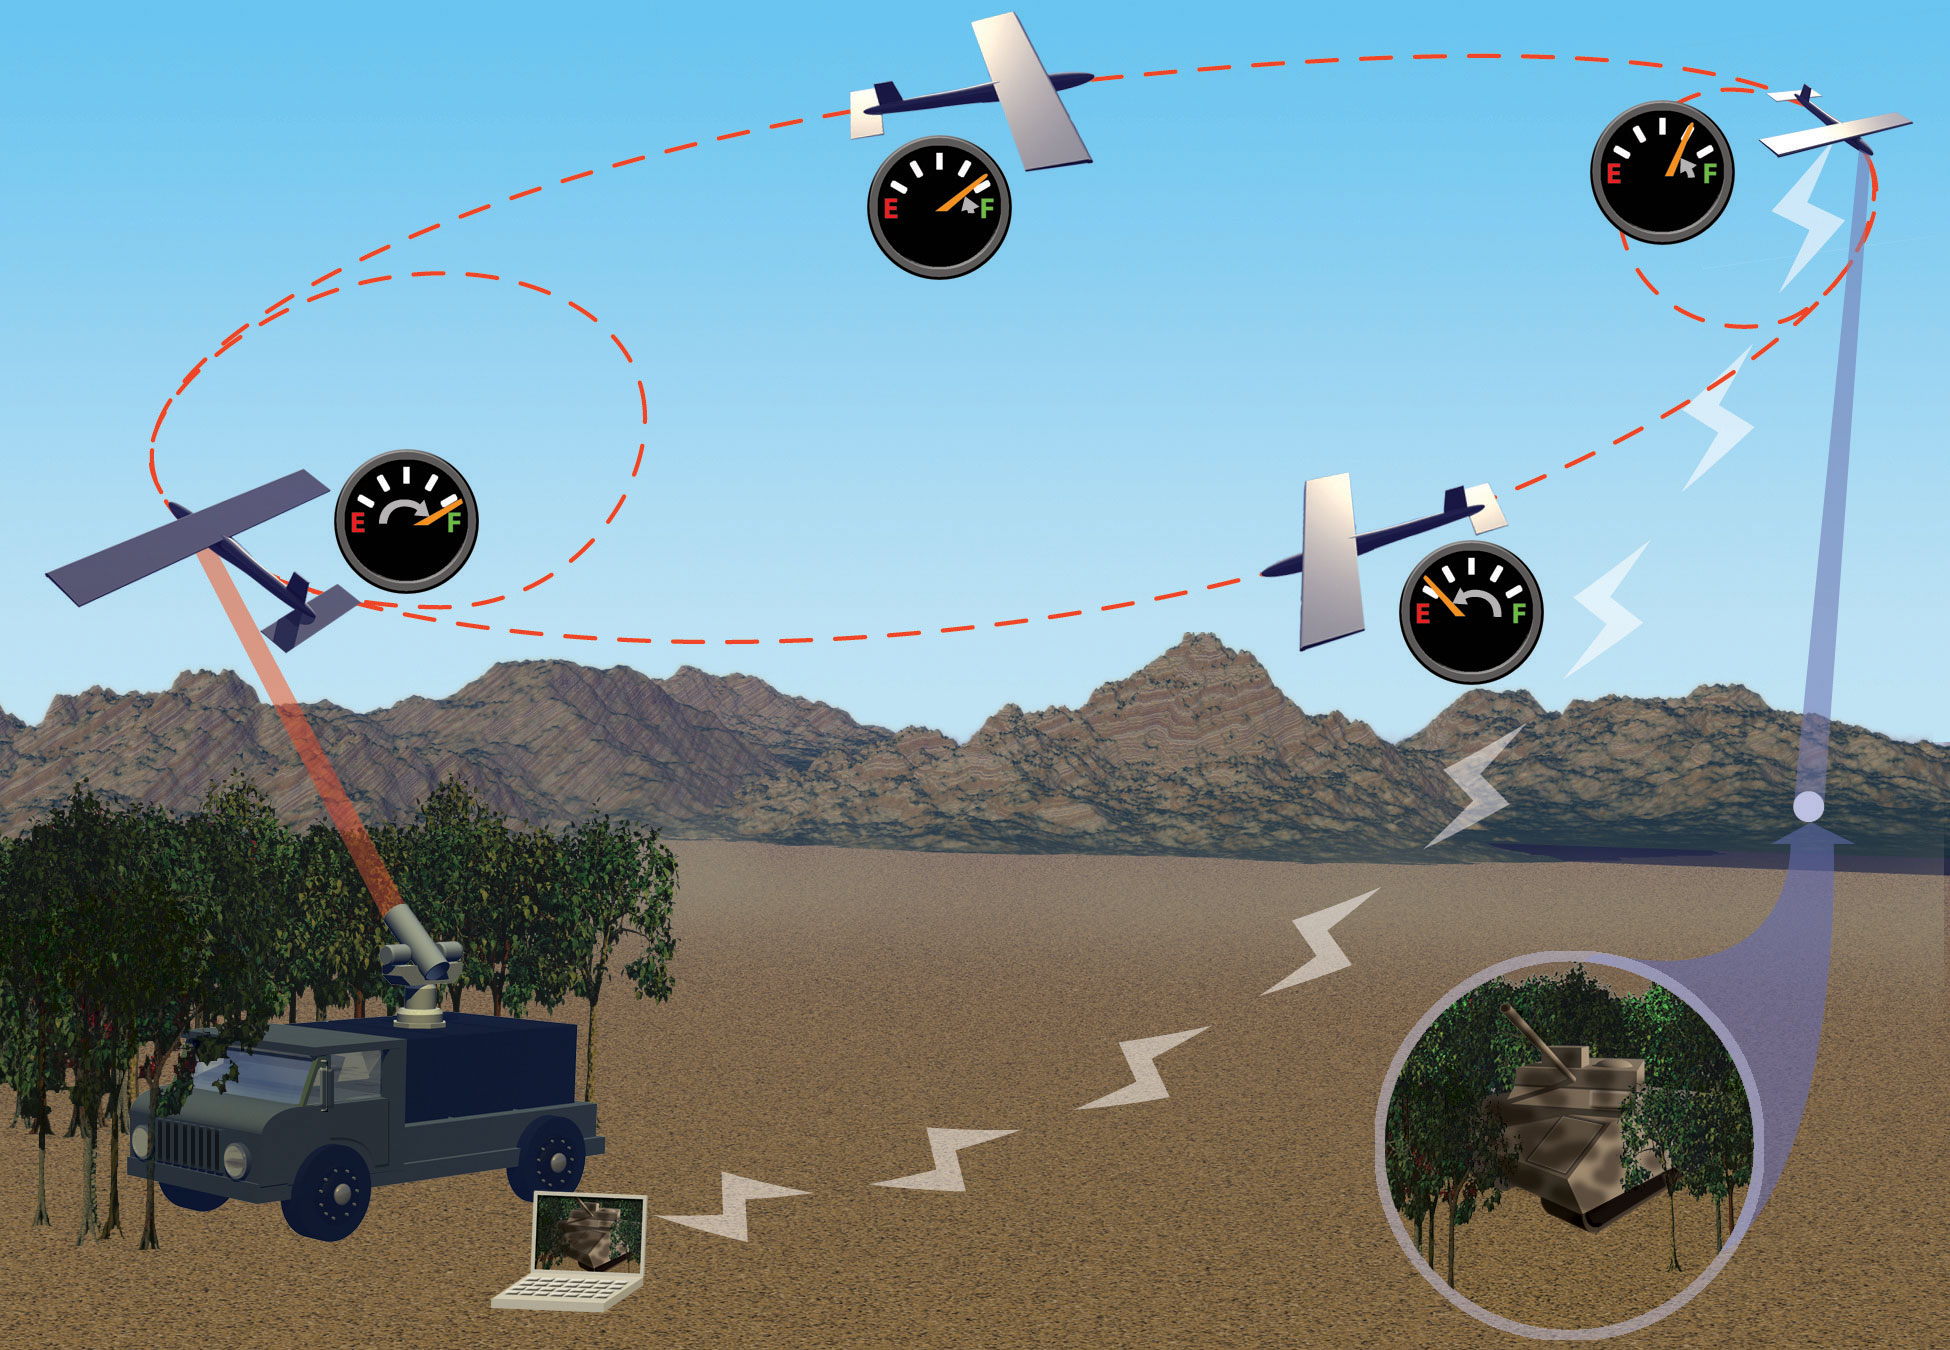 """LaserMotive and Lockheed Martin Skunk Works Developing """"Power Beaming"""" In-Flight Laser-Recharging for UAS/UAV/Drone Aircraft: Are Wireless-Powered/Laser Beam-Powered """"Eternal"""" Armed/Weaponized Unmanned Combat Aircraft Soon to Become the Norm?"""